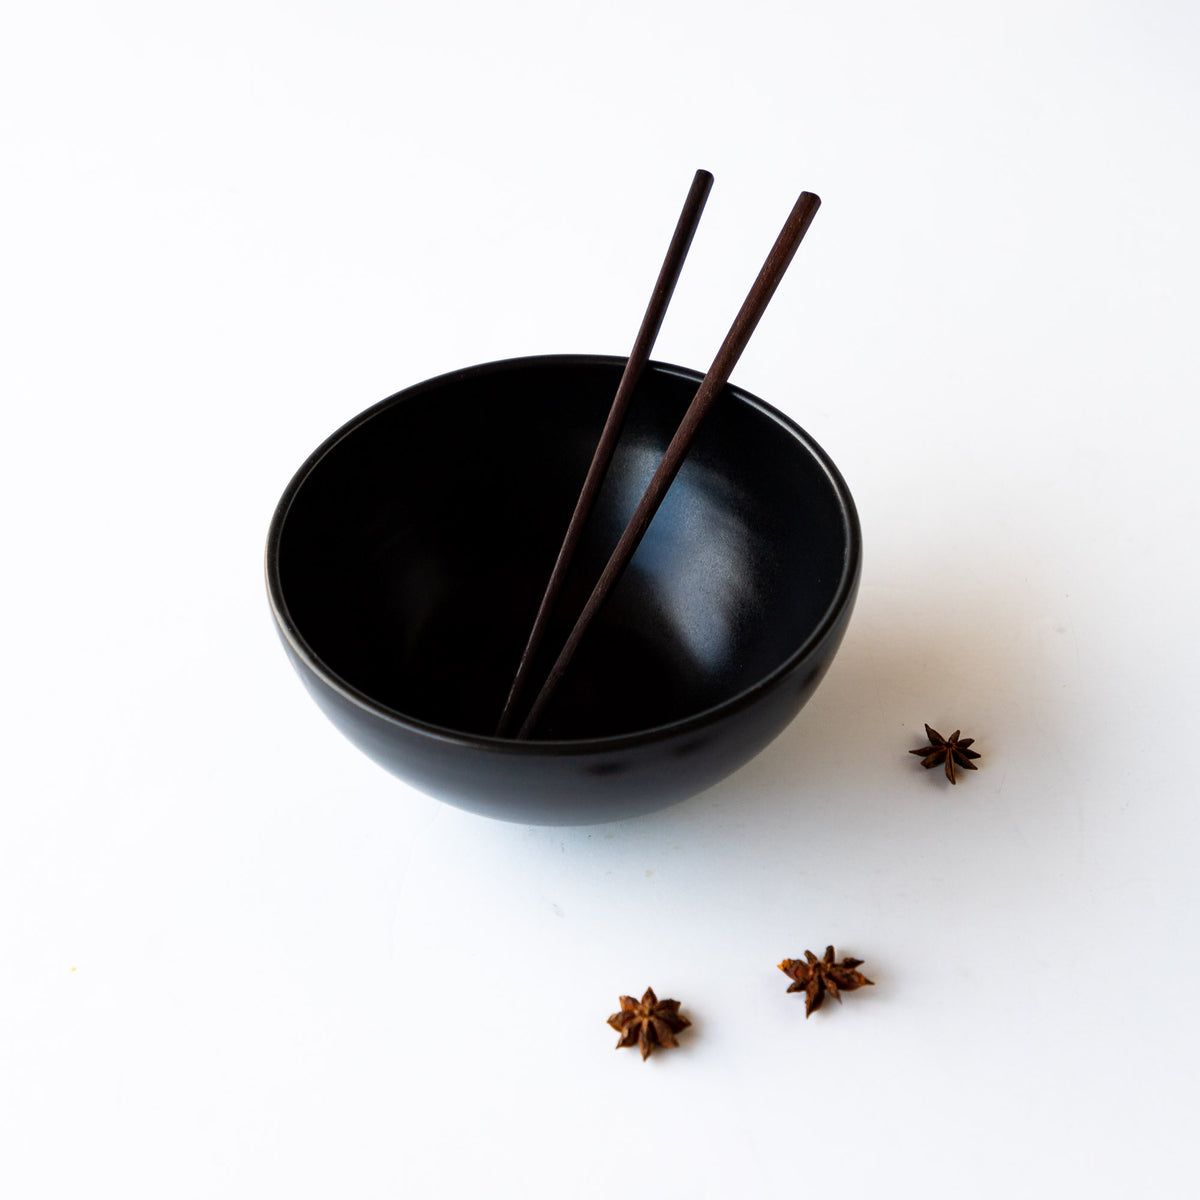 Top View - Large Handmade Poke Bowl in Black Satin Glazed Porcelain - Sold by Chic & Basta